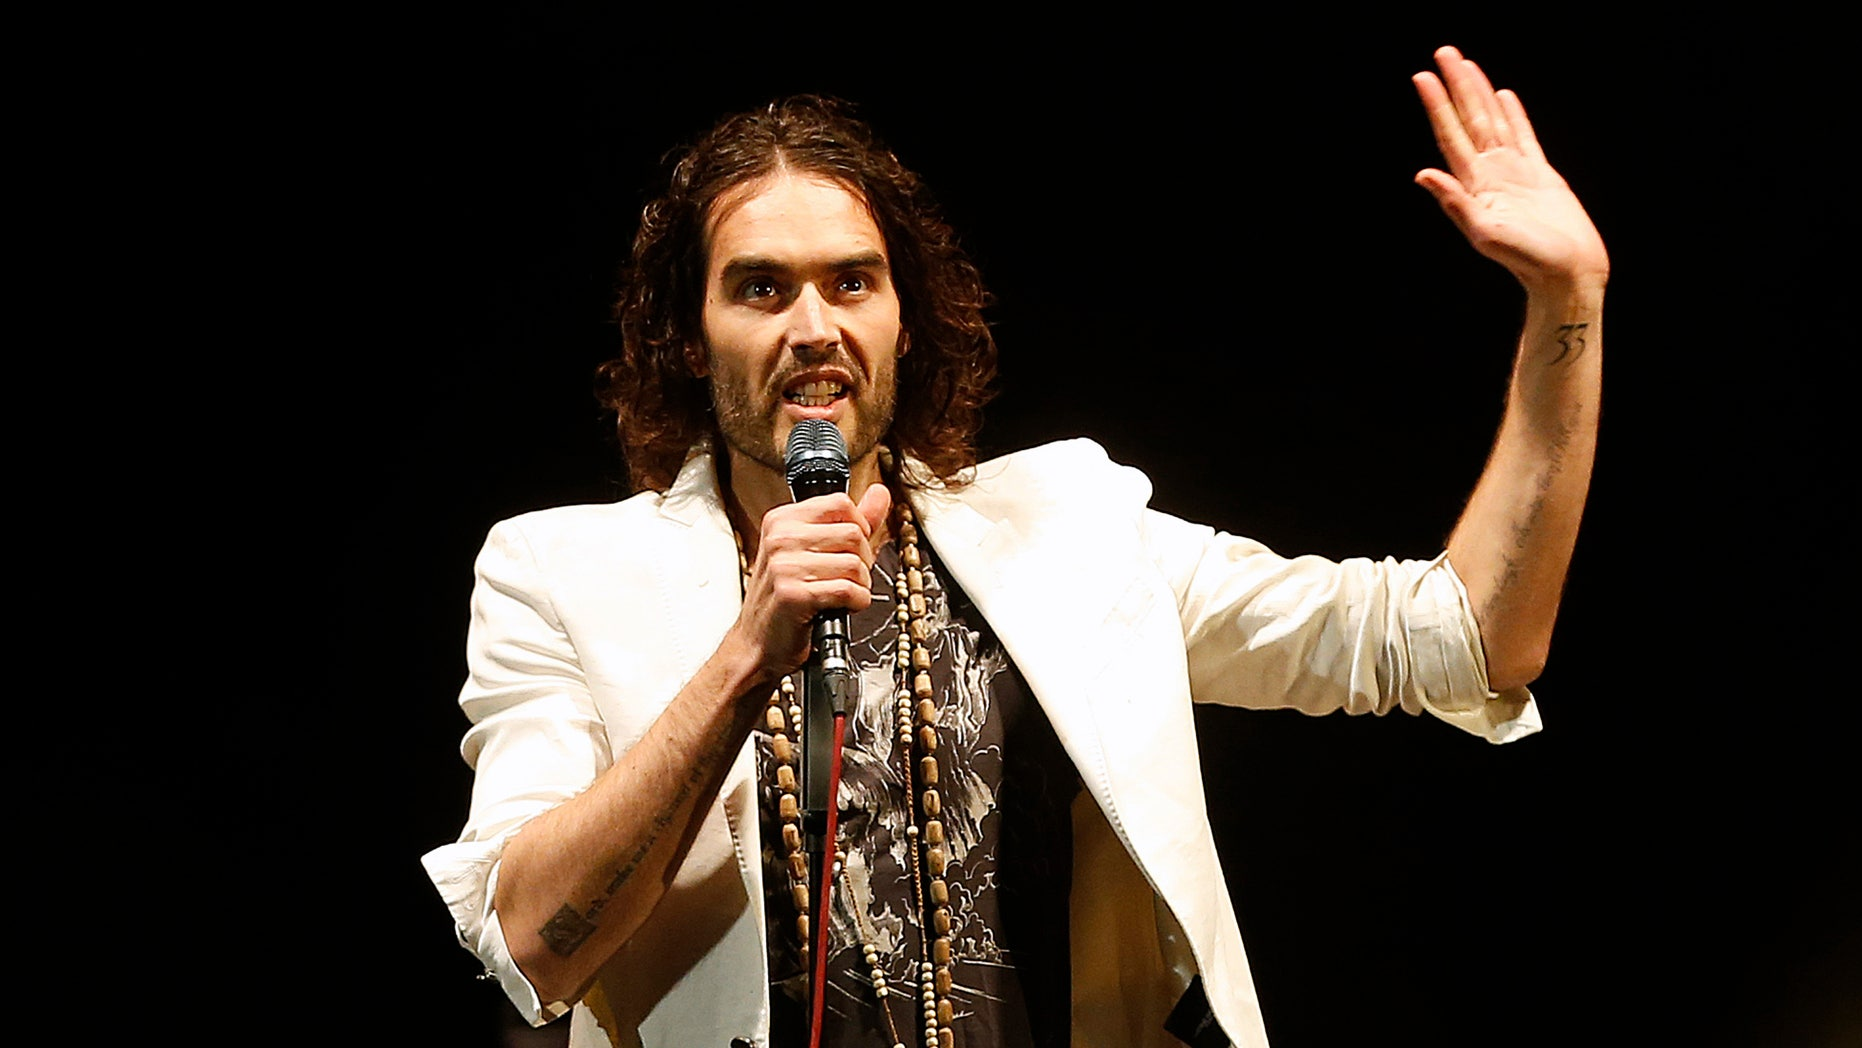 March 9, 2014. British comedian Russell Brand performs at his Messiah Complex show at Brixton Academy in London.